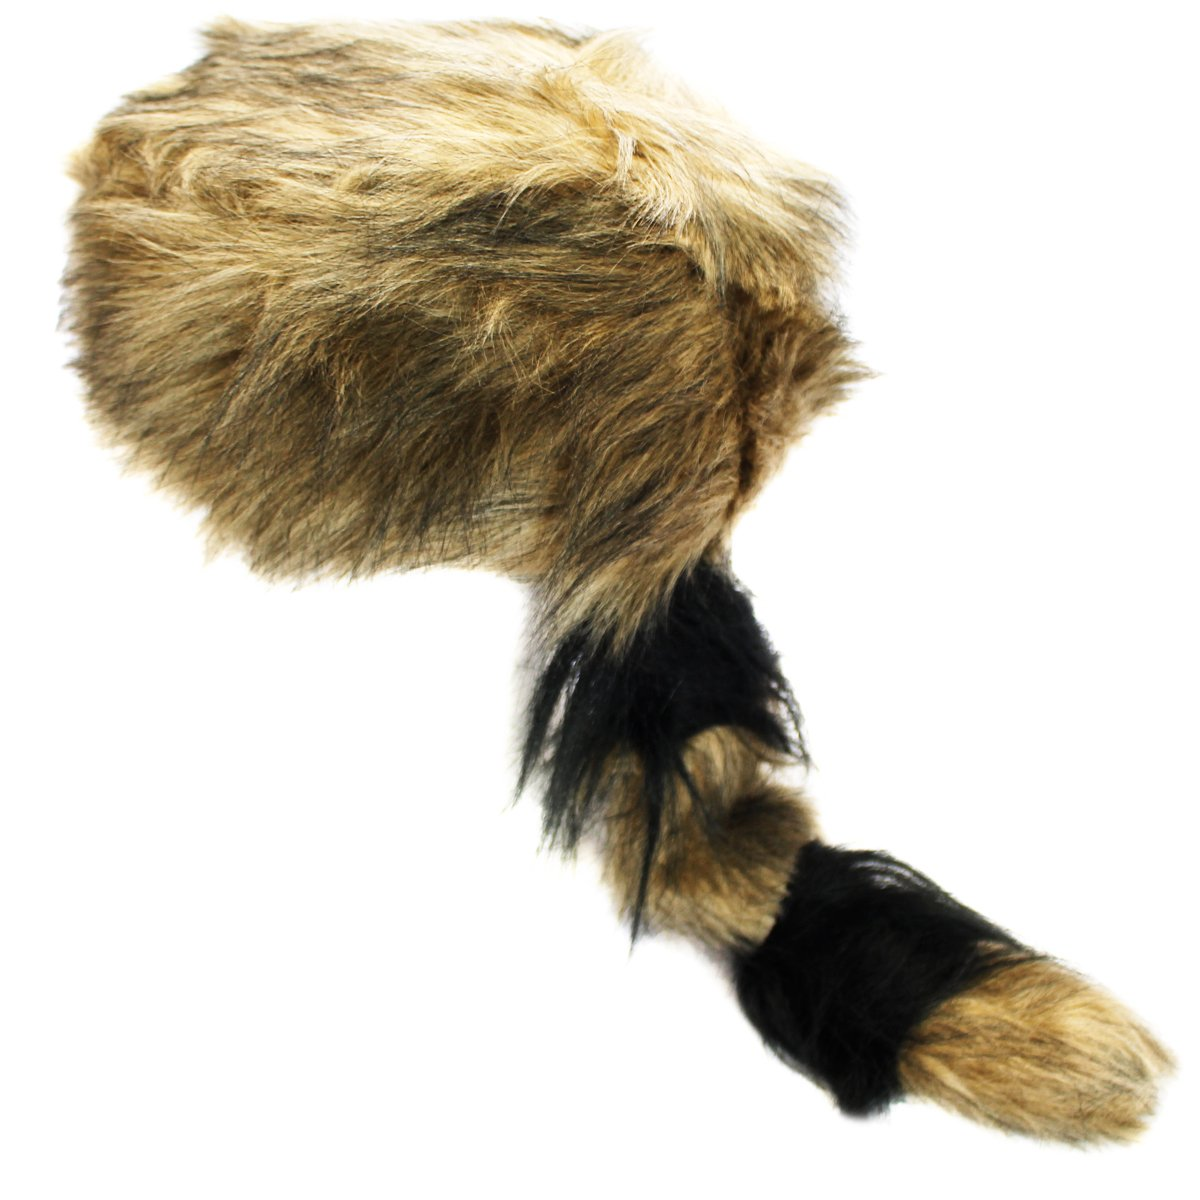 Coonskin Cap - Daniel Boone Hat Raccoon Tail Hats Novelty Hat by Funny Party Hats am234